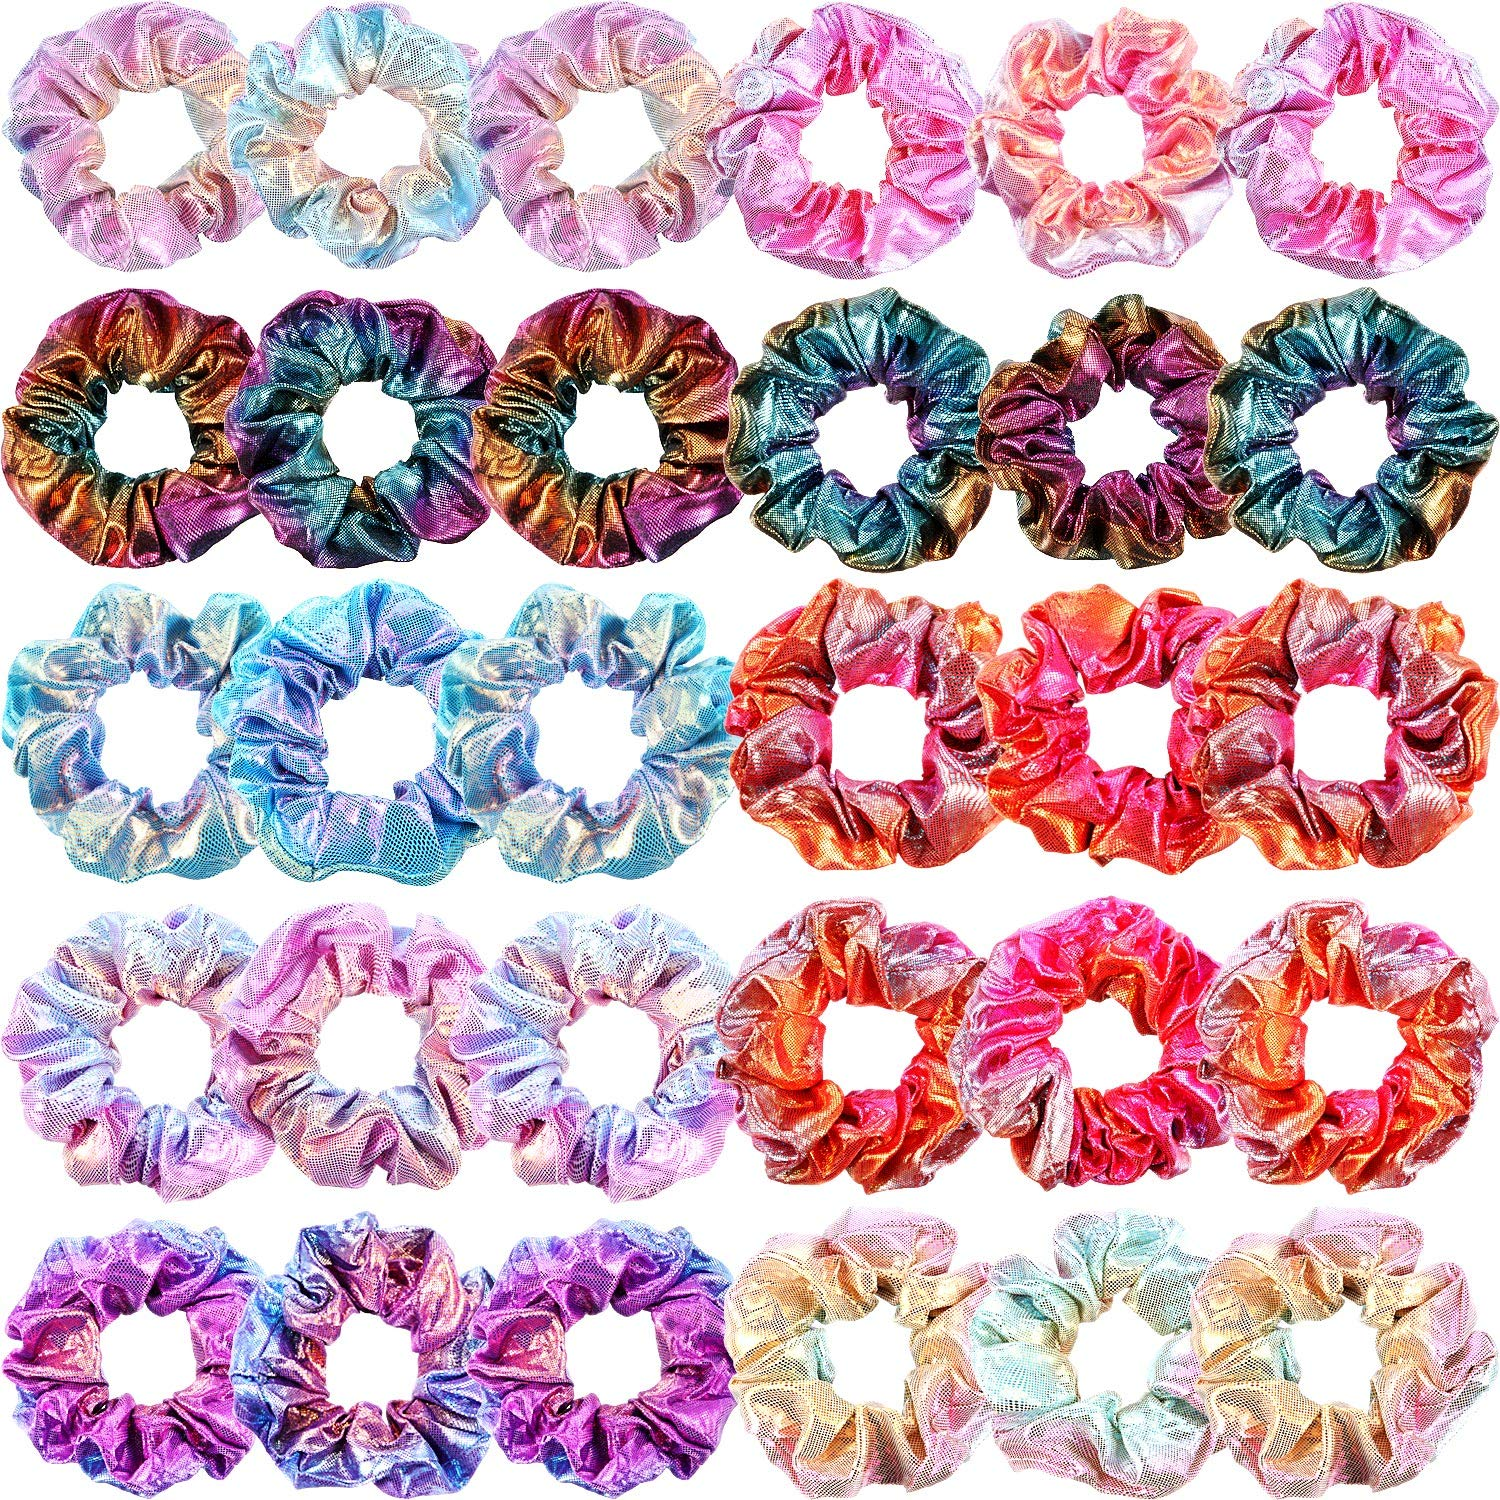 30 Pieces Metallic Scrunchies Shiny Elastic Hair Bands Scrunchy Gradient Mermaid Colors Hair Ties Ropes for Women Girls Hair, 10 Colors 2 Sides in Different Color by WILLBOND